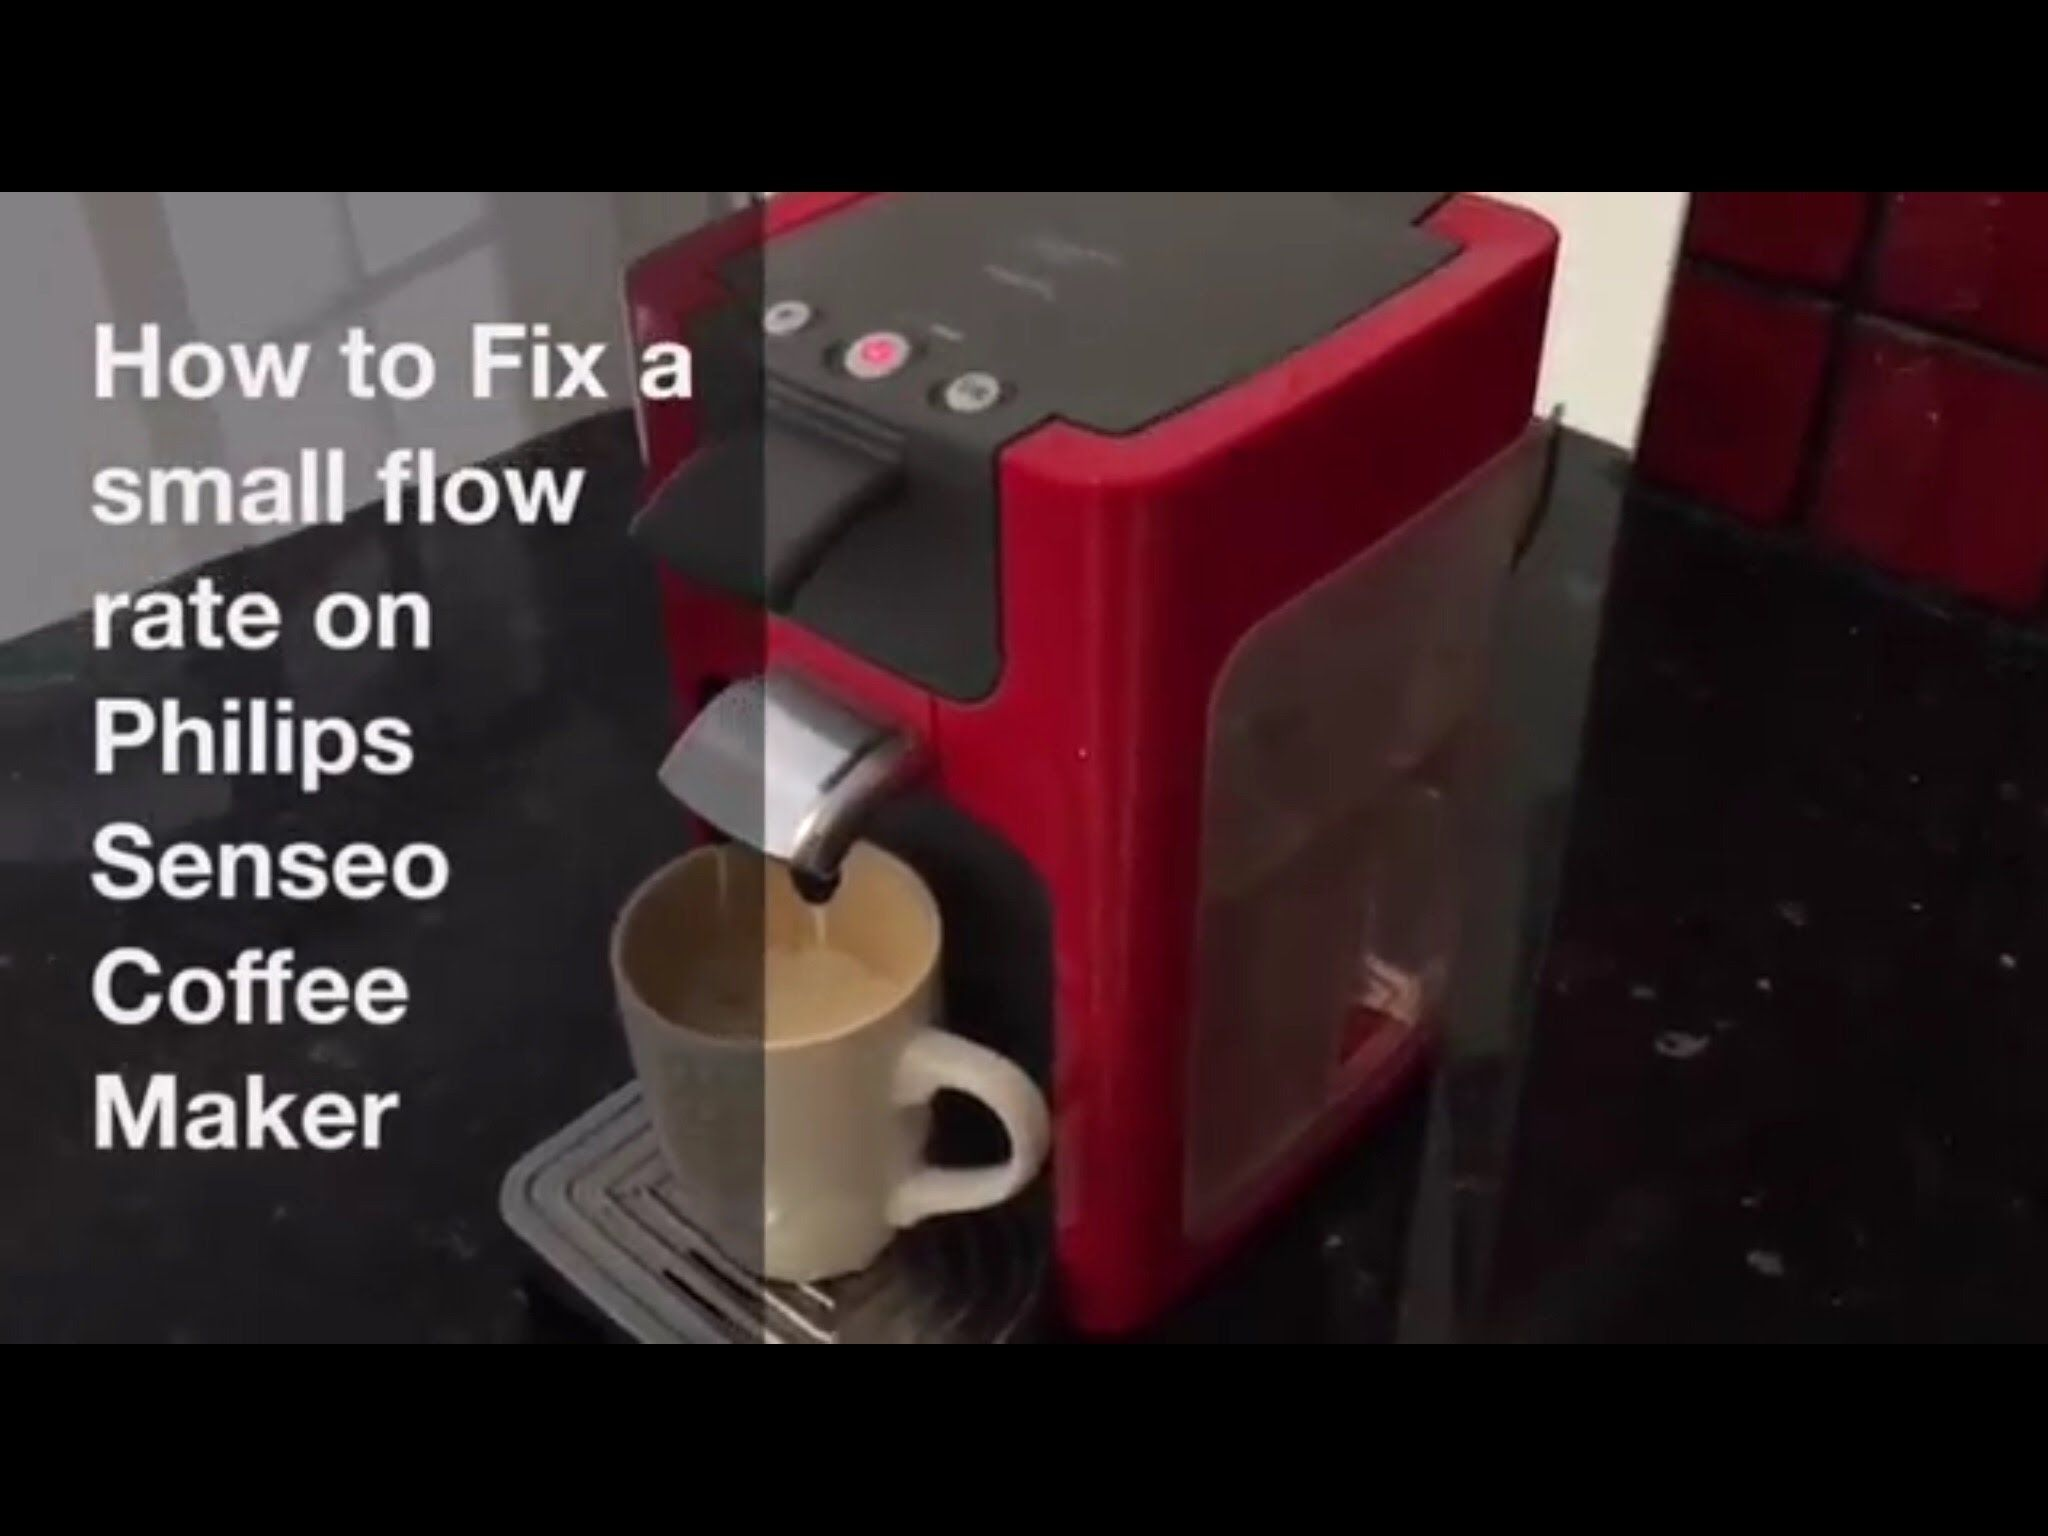 How to Fix Low Flow Rate on Philips Senseo Coffee Maker